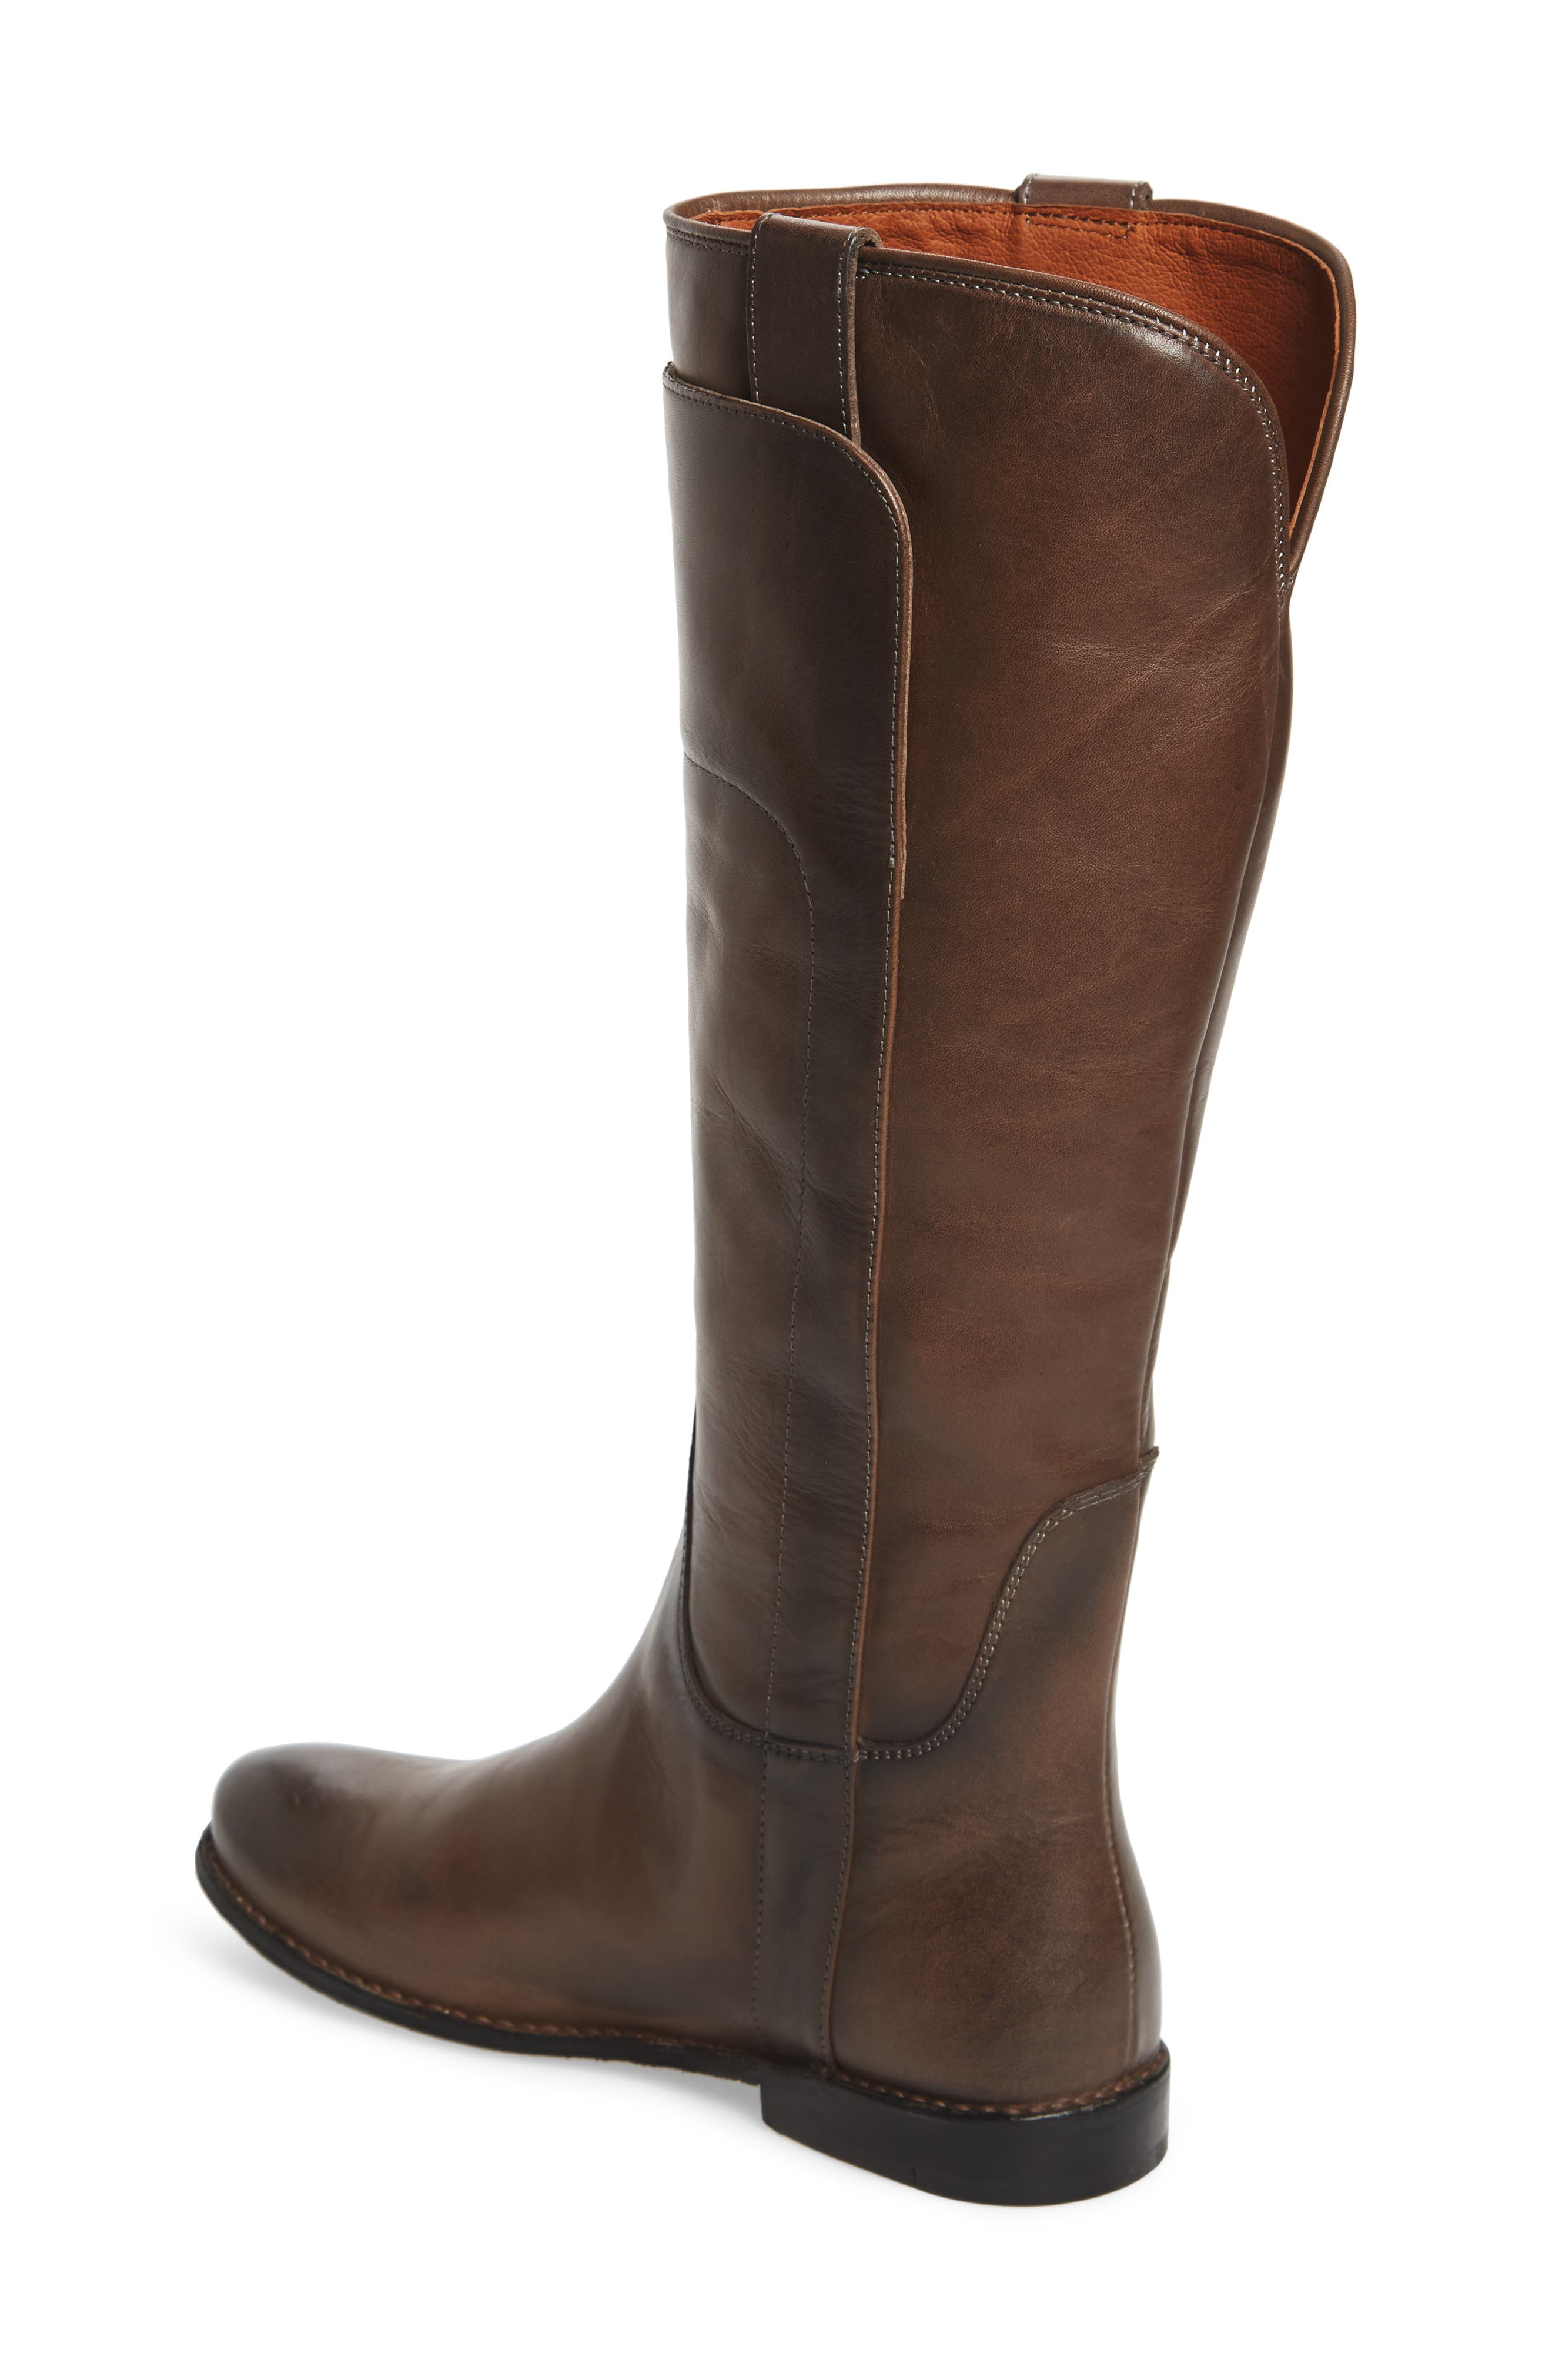 Paige Tall Riding Boot,                             Alternate thumbnail 2, color,                             Smoke